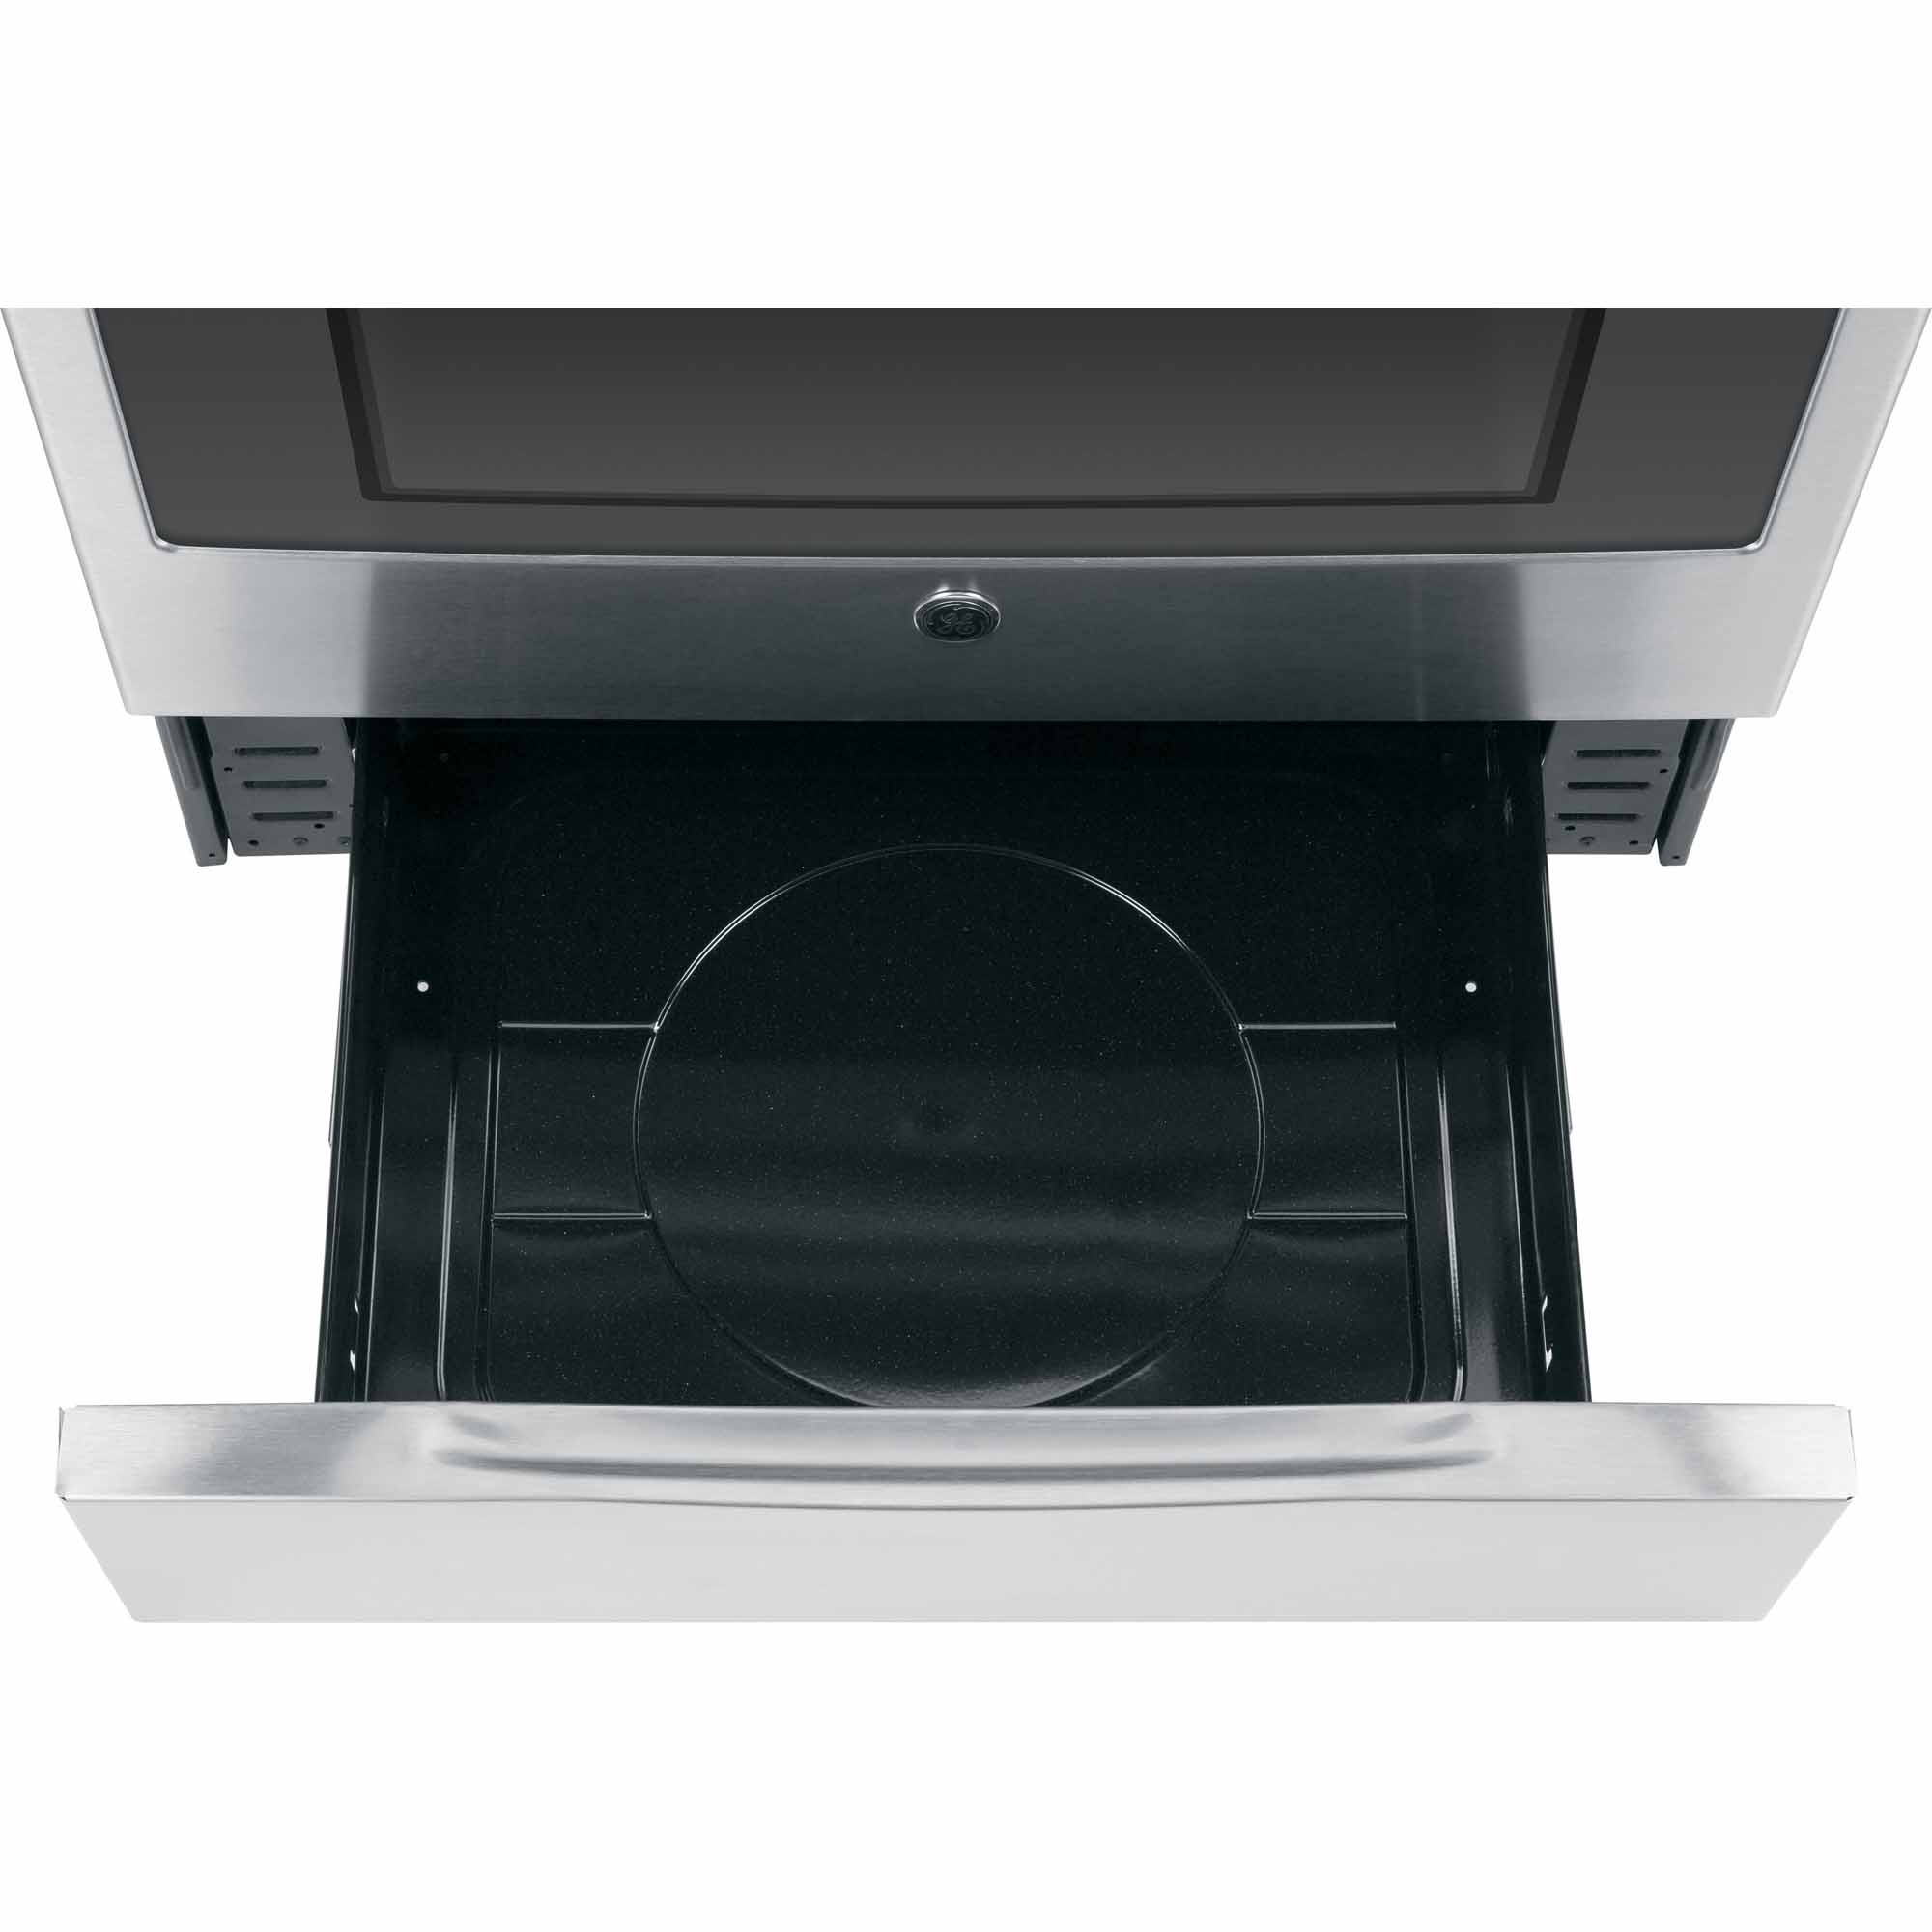 GE Appliances JGS750SEFSS 5.6 cu. ft. Slide-In Gas Range - Stainless Steel